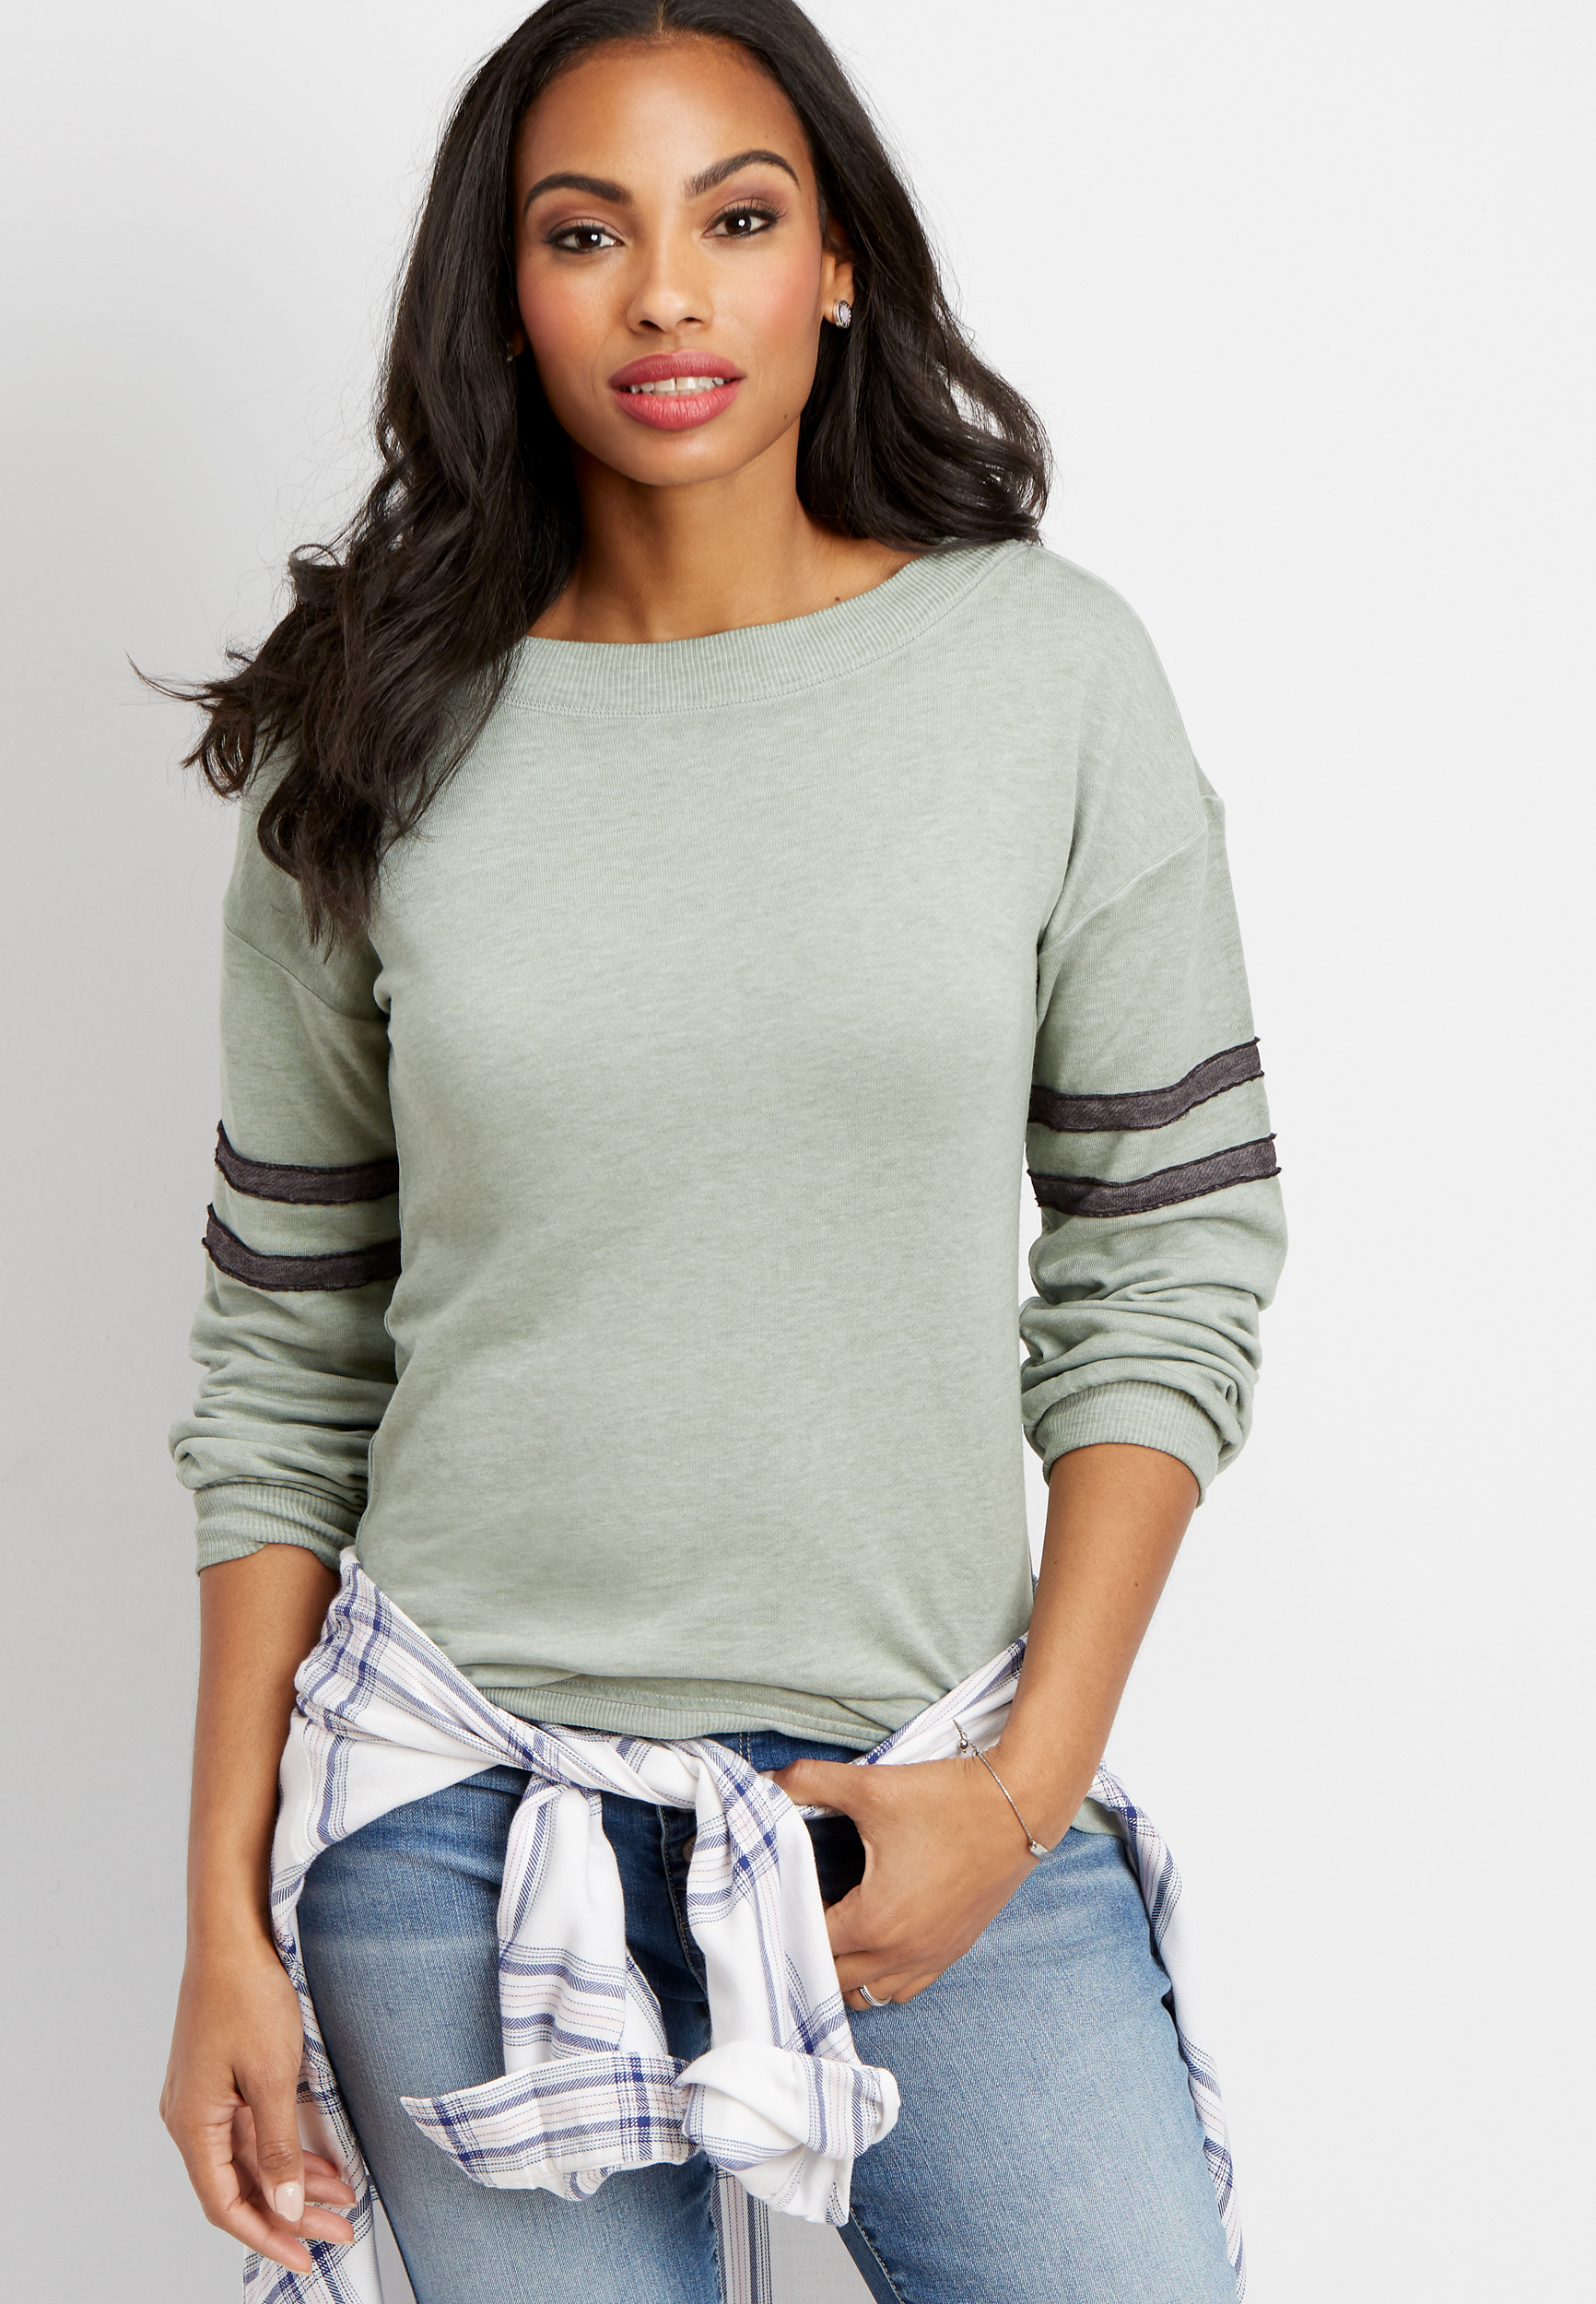 Marilyn Neck Puff Sleeve Football Pullover by Maurices